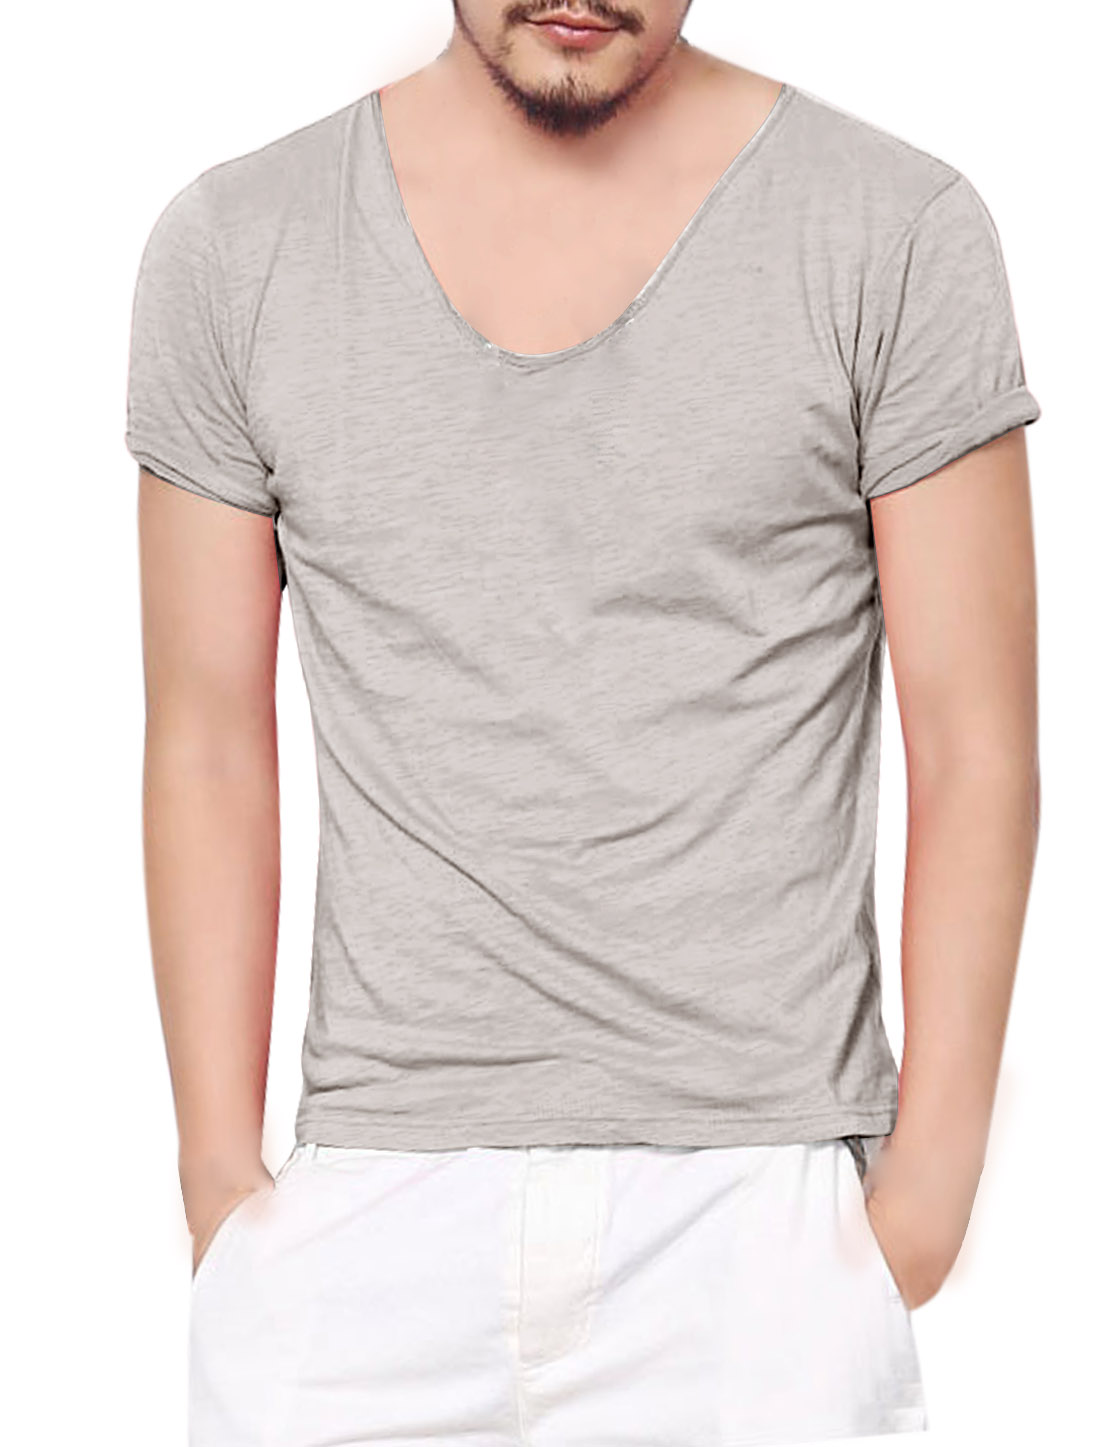 Man's Summer Fit Short Sleeve Pullover T Shirt Light Gray M